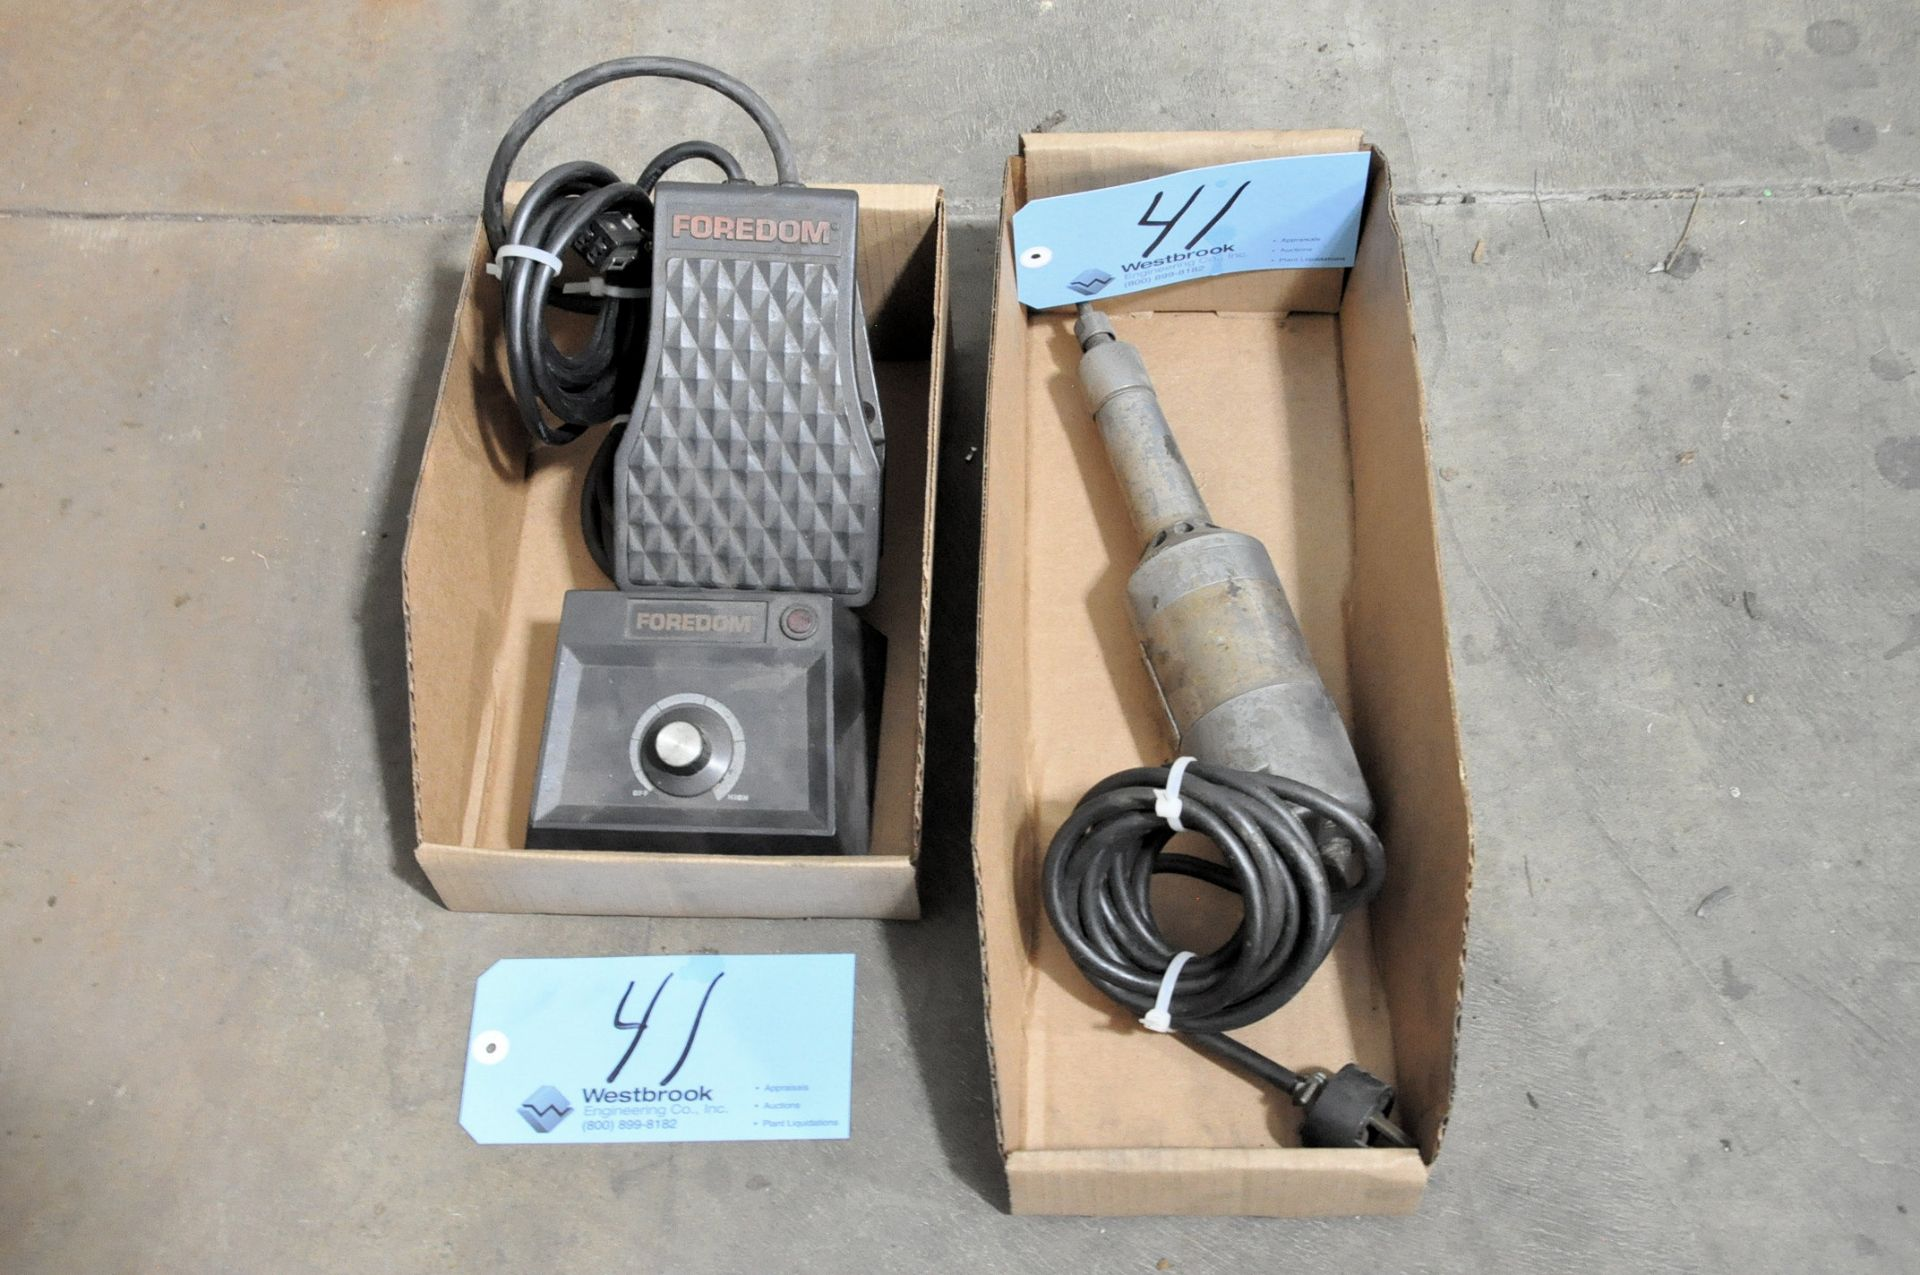 Lot 41 - INGERSOLL RAND Die Grinder with FOREDOM Speed Control in